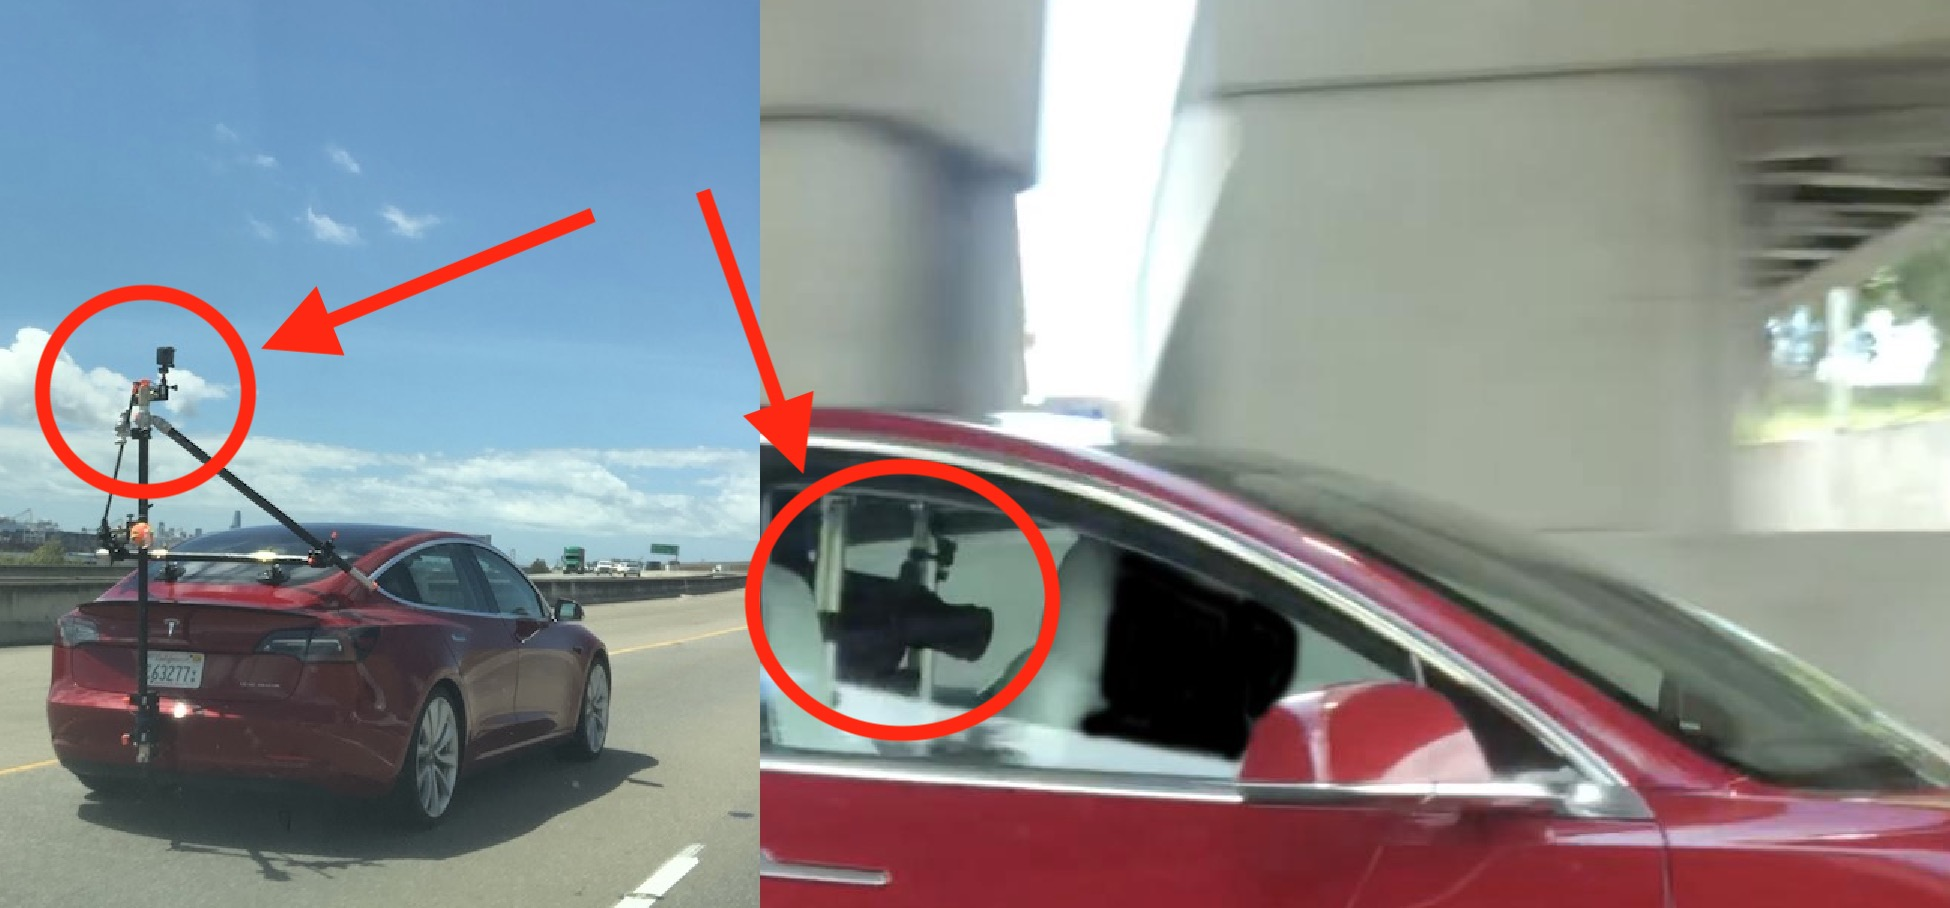 Tesla shorts threaten to cause car accidents to discredit Tesla; restraining order filed